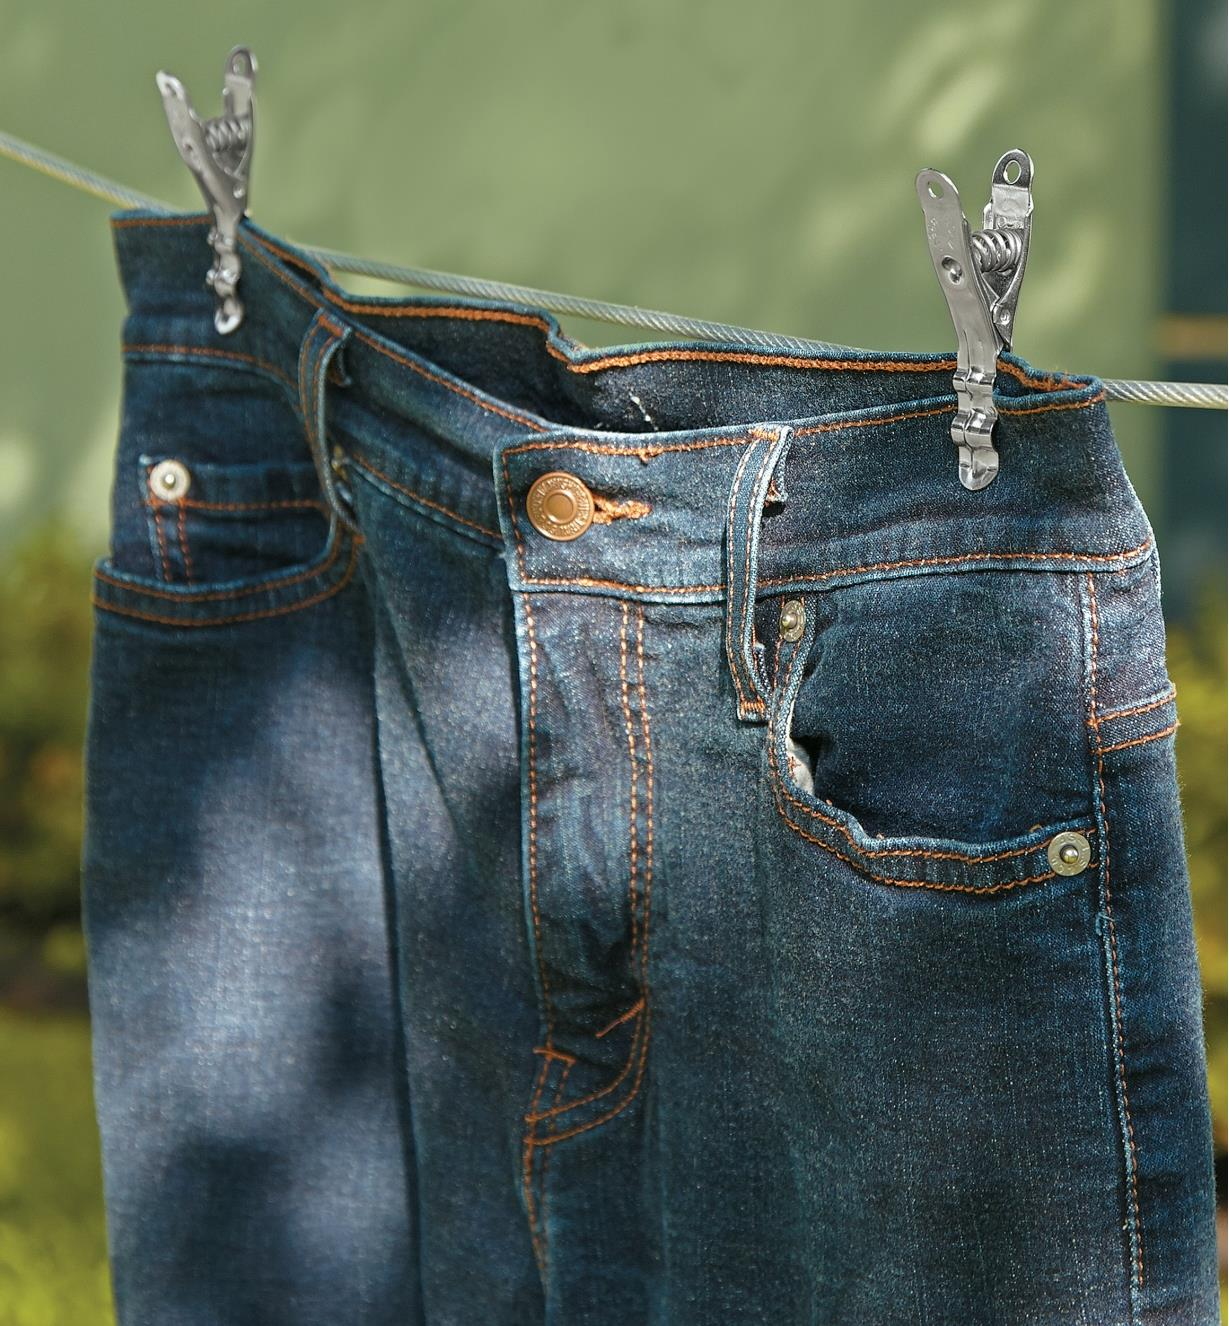 Lifetime Clothespins holding jeans on a clothesline